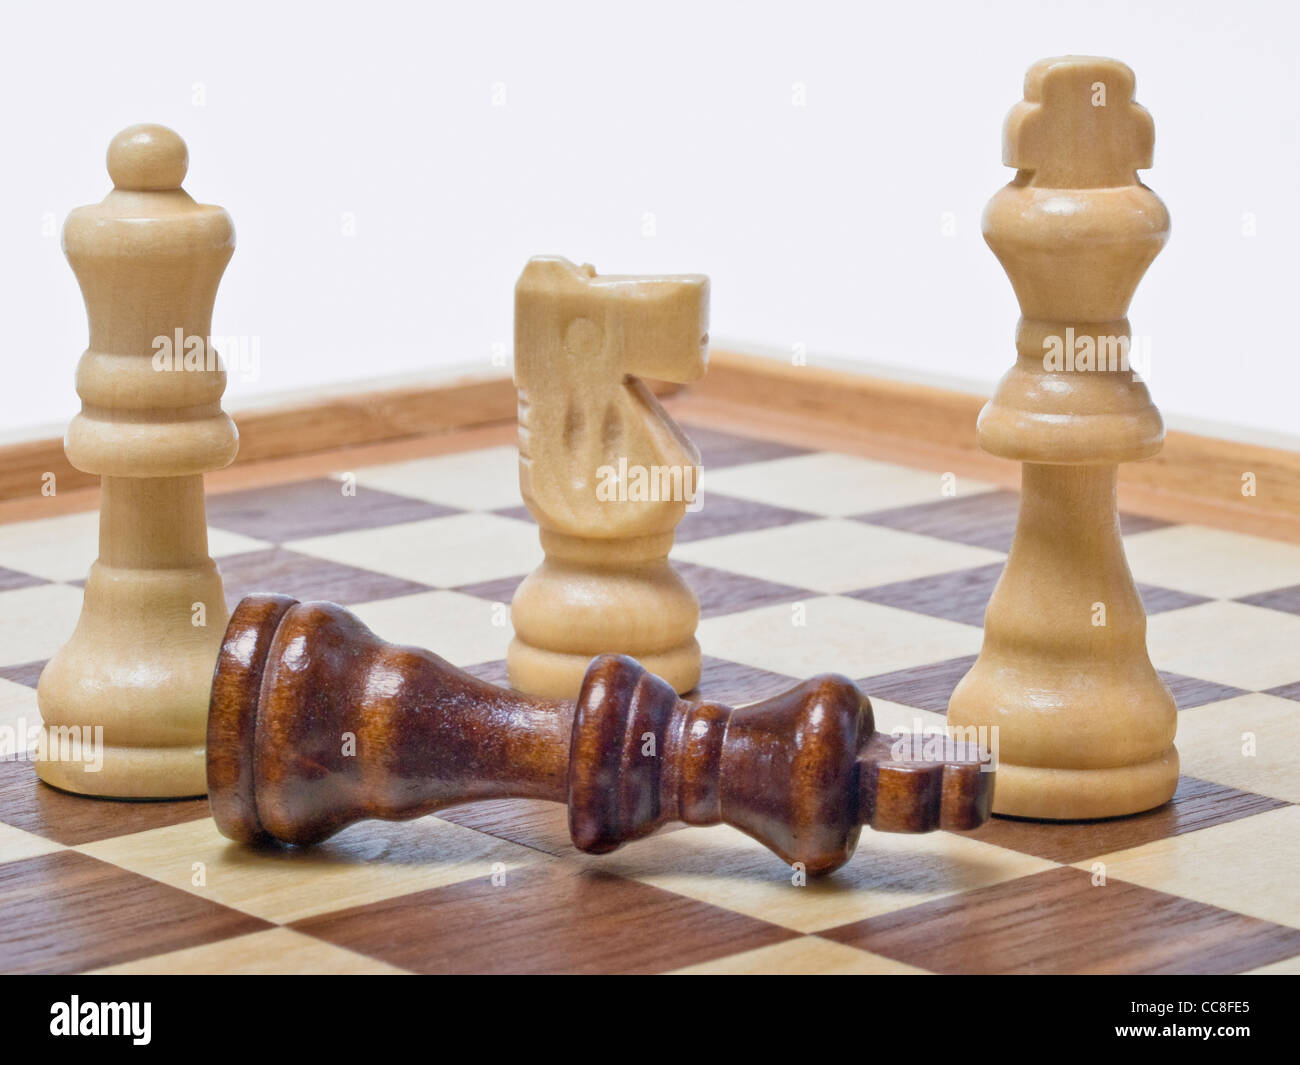 A chessboard, on it is a white queen, a white horse and a white King. In front is the black King topple down. - Stock Image